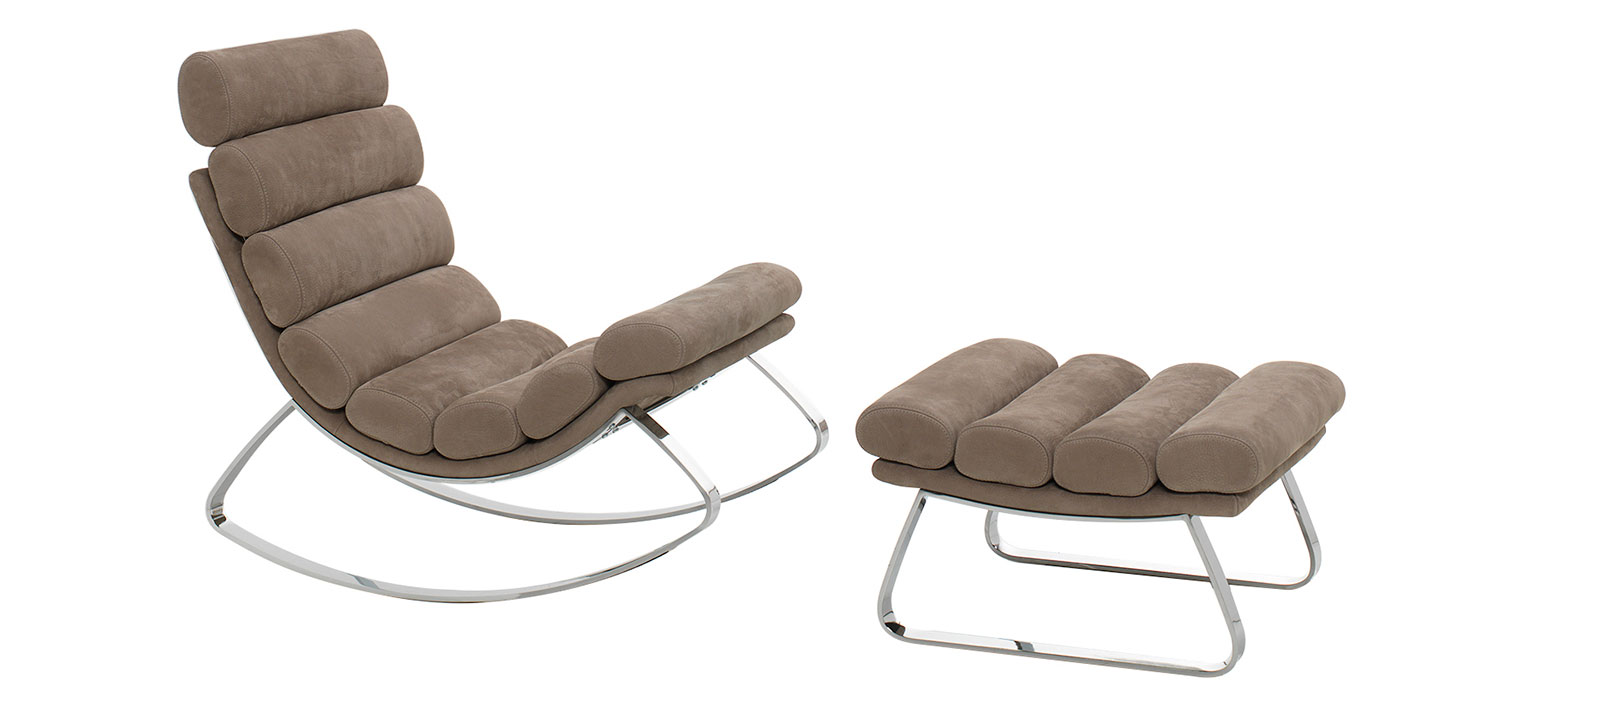 Luxurious rocking chair designed by Stefano Conficconi. wood, chrome metal and nubuck leather. Shop for modern Italian furniture. Free home delivery.